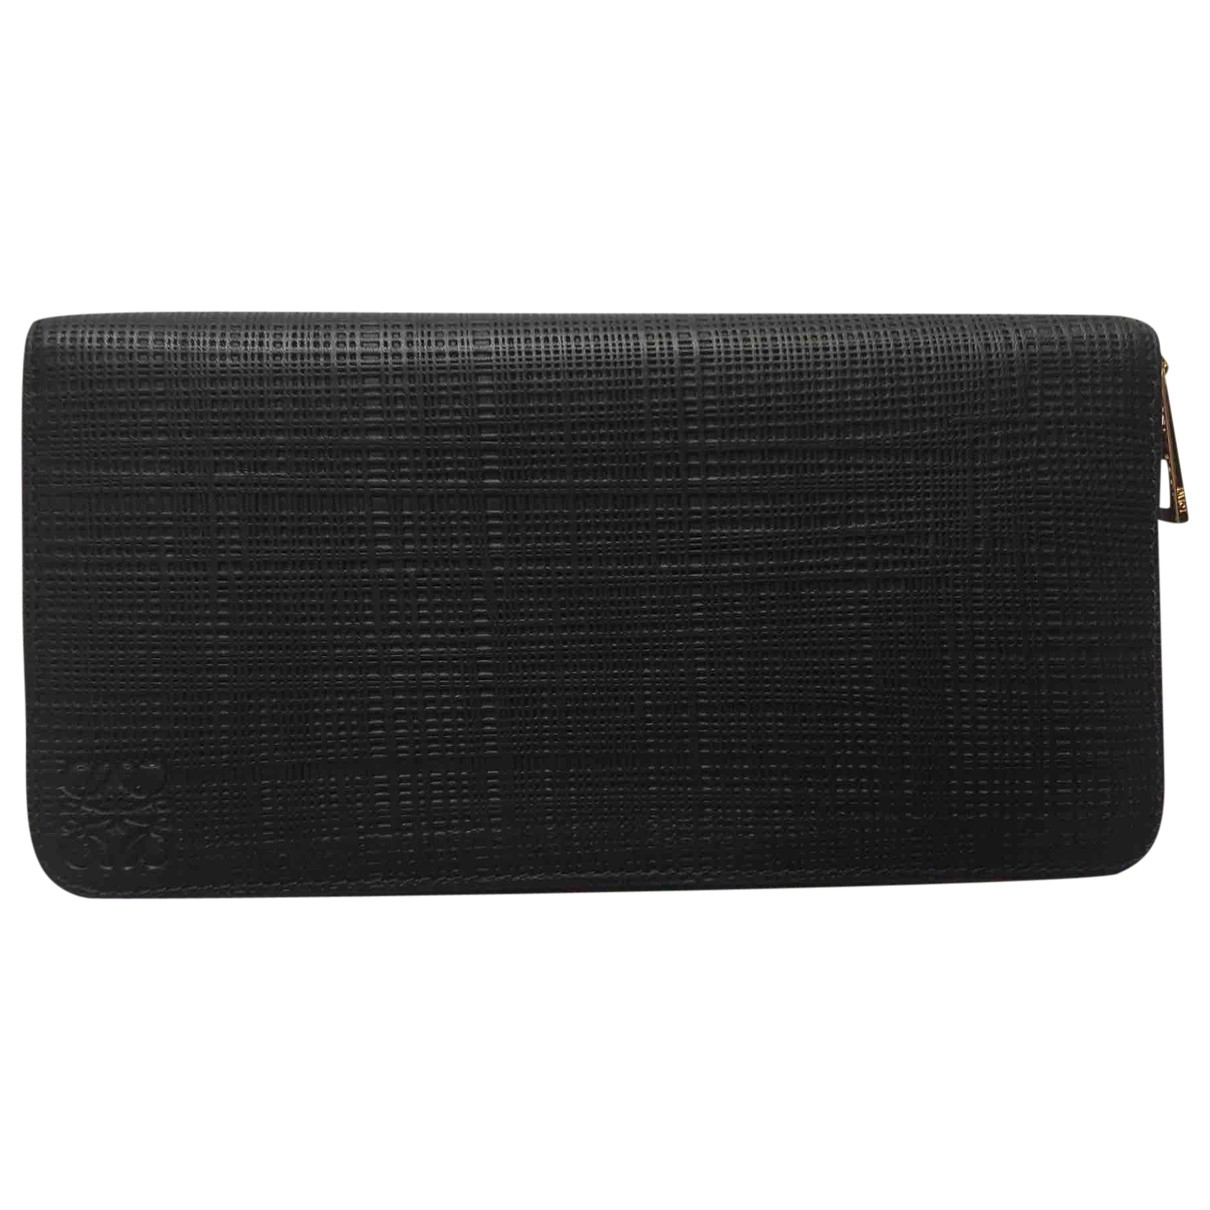 Loewe \N Black Leather wallet for Women \N